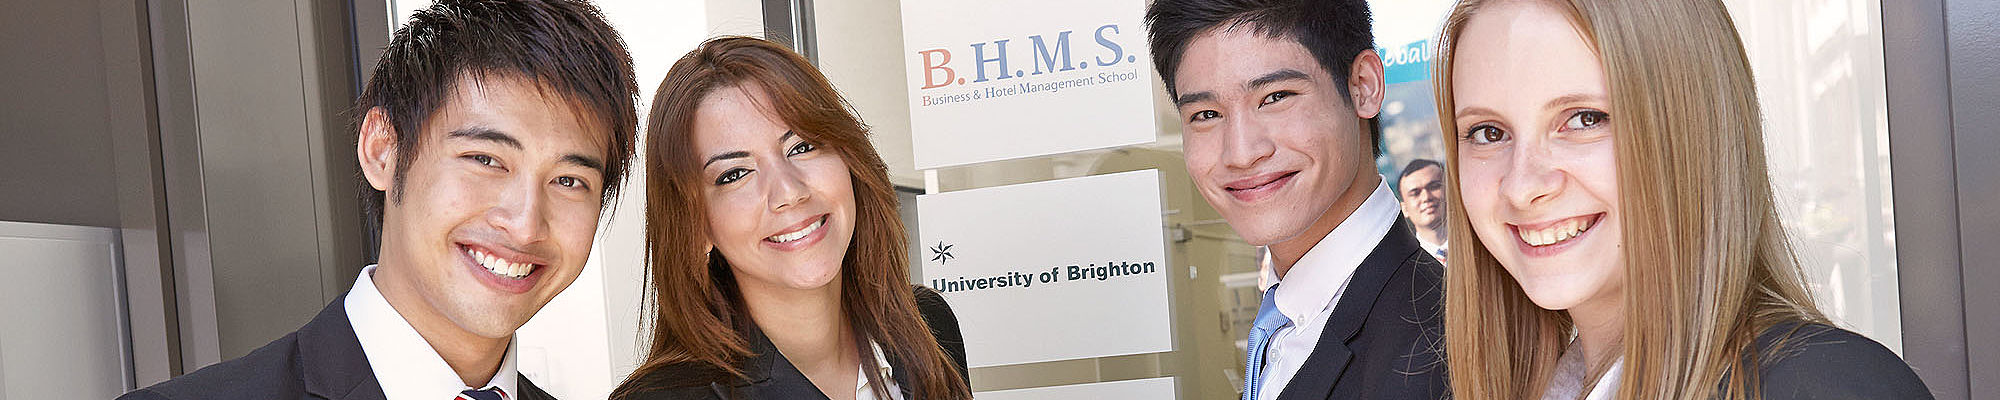 Business & Hotelmanagement School B.H.M.S. Switzerland